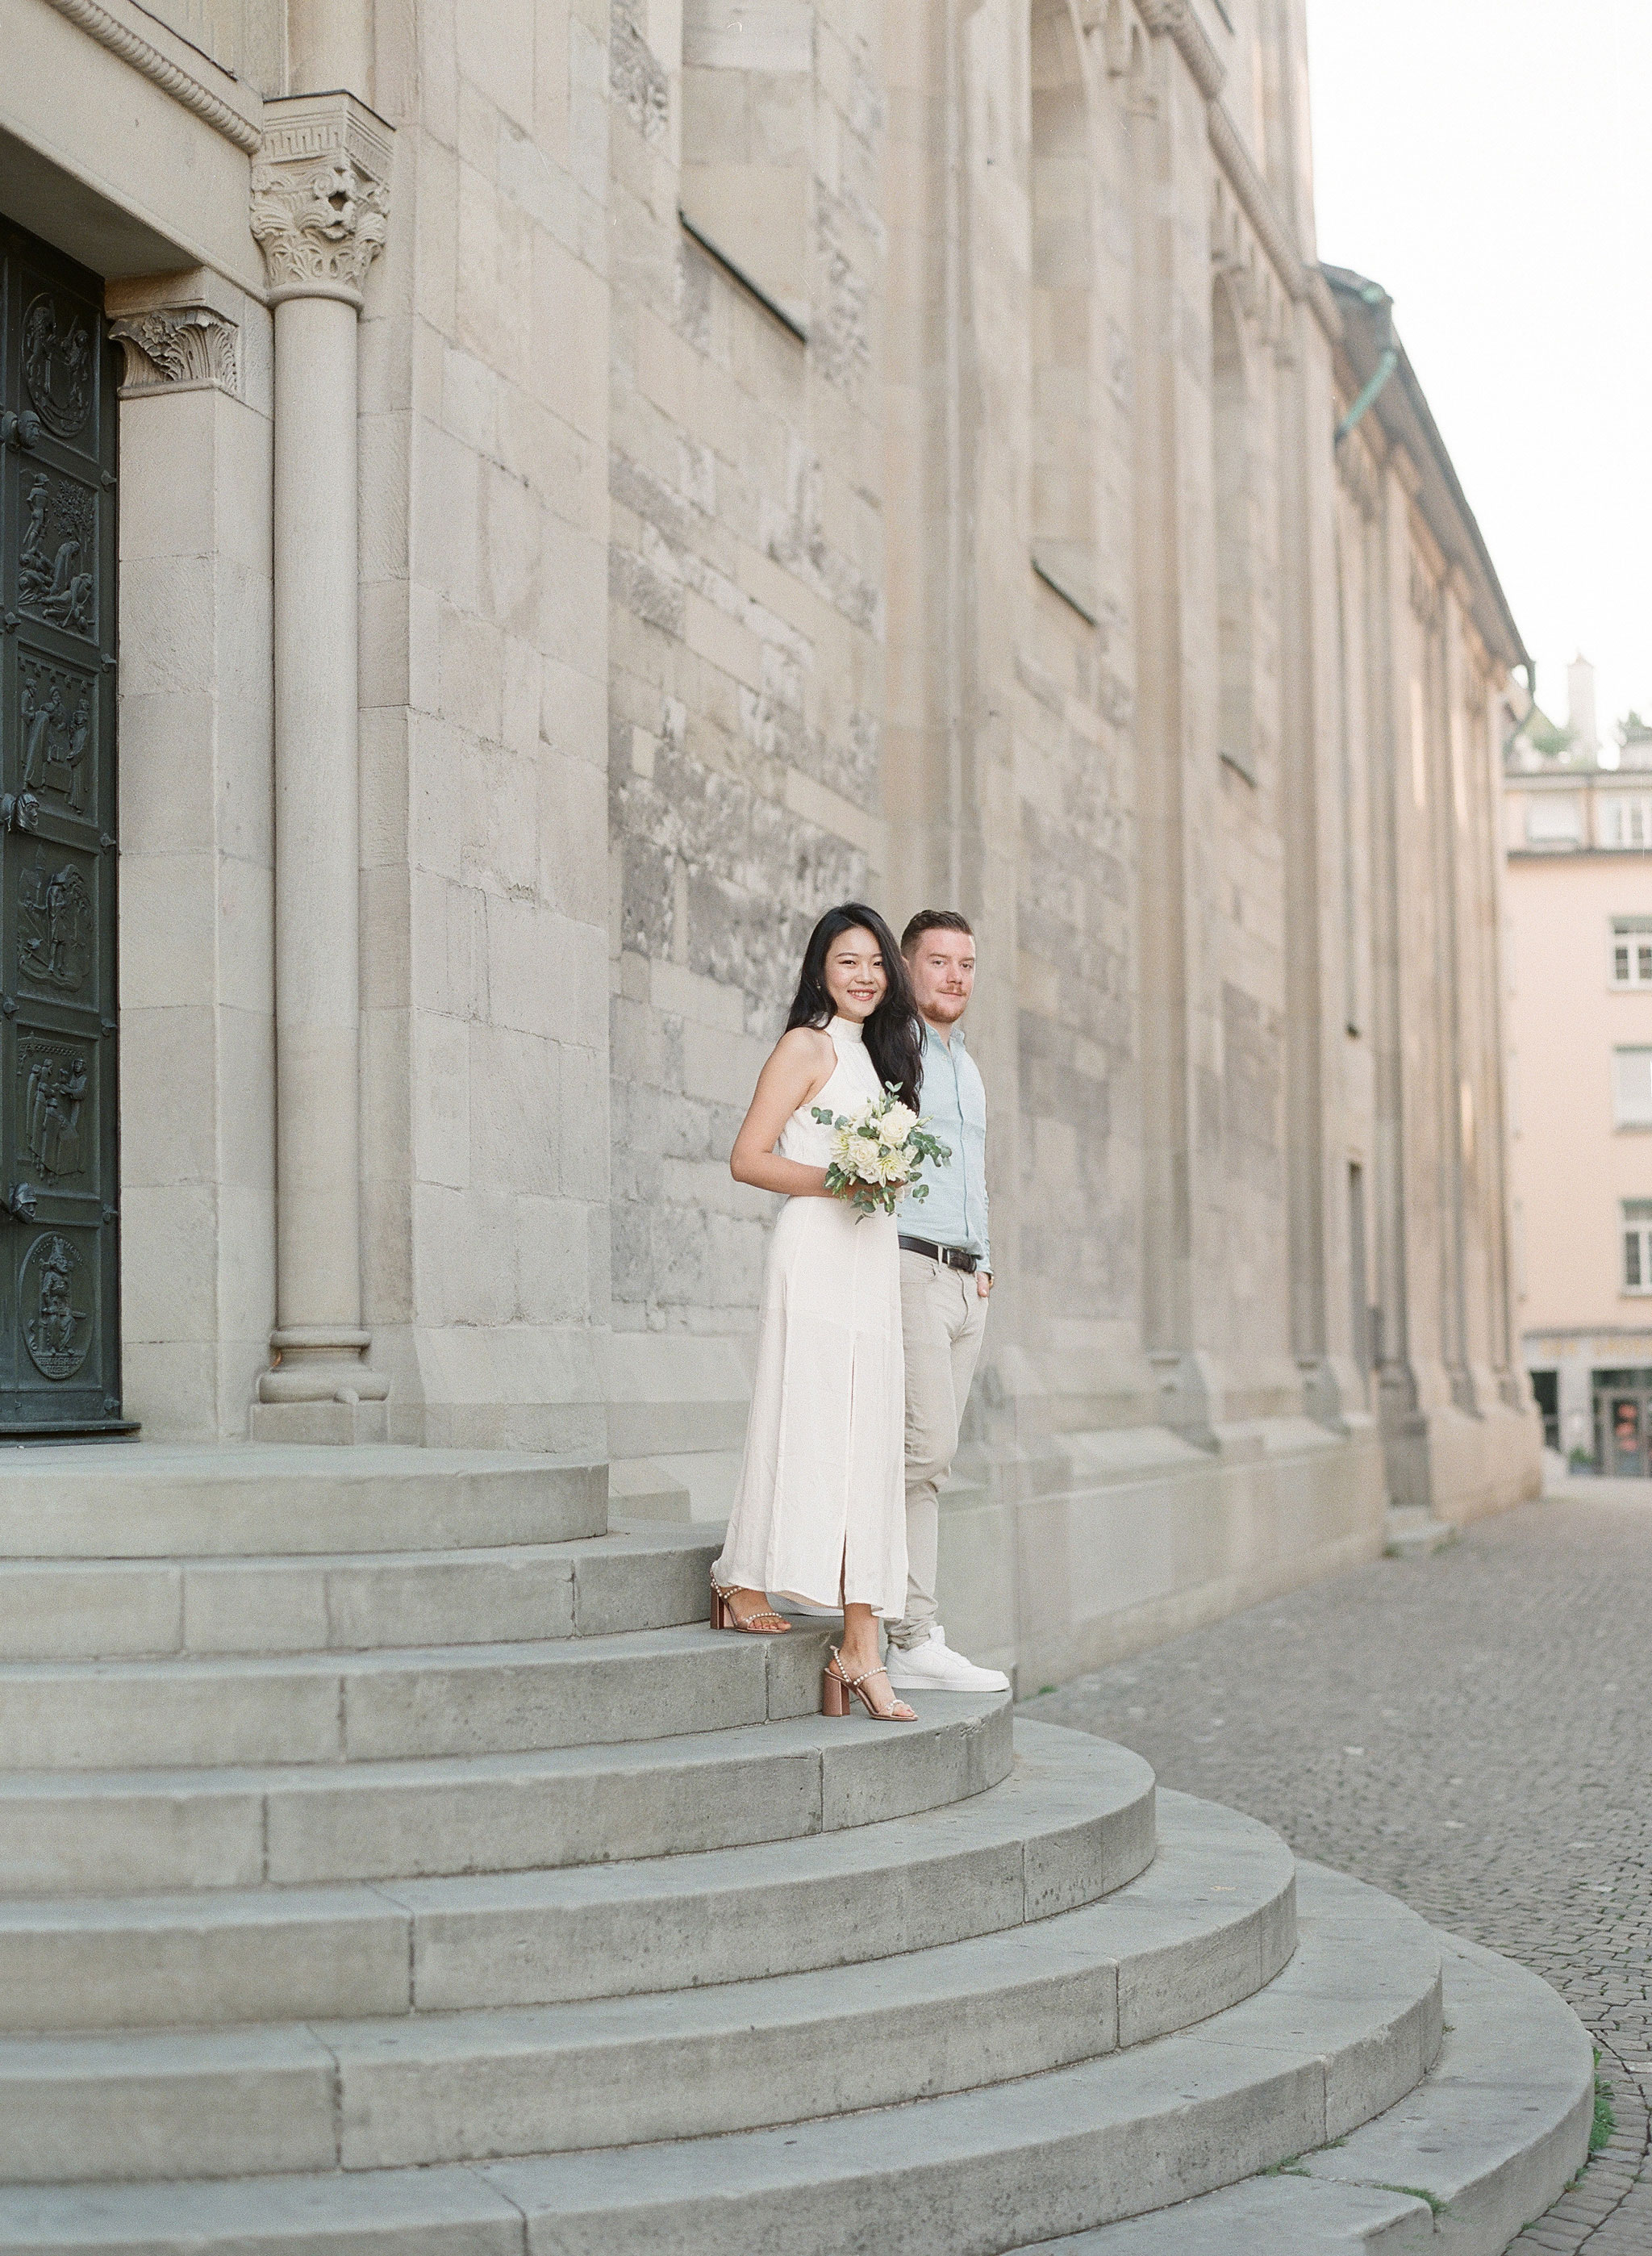 wedding-photographer-switzerland-08032019.jpg